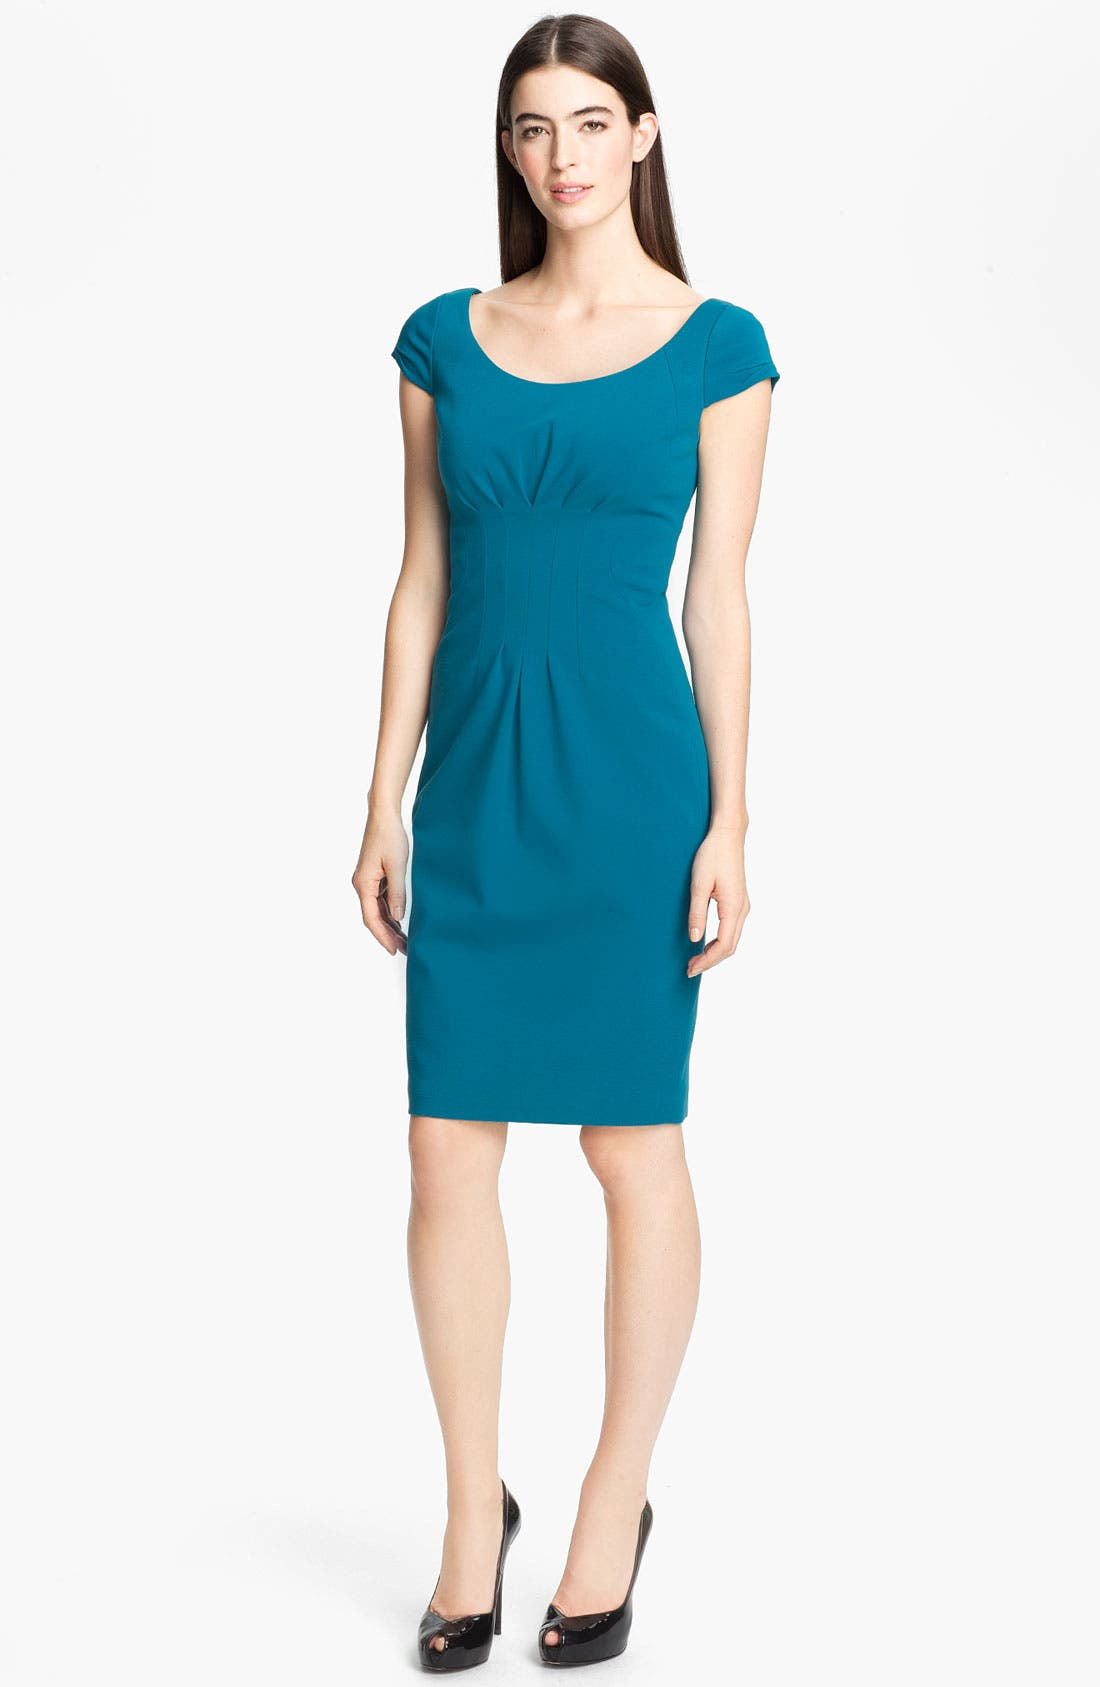 Alternate Image 1 Selected - Elie Tahari 'Gia' Cap Sleeve Dress